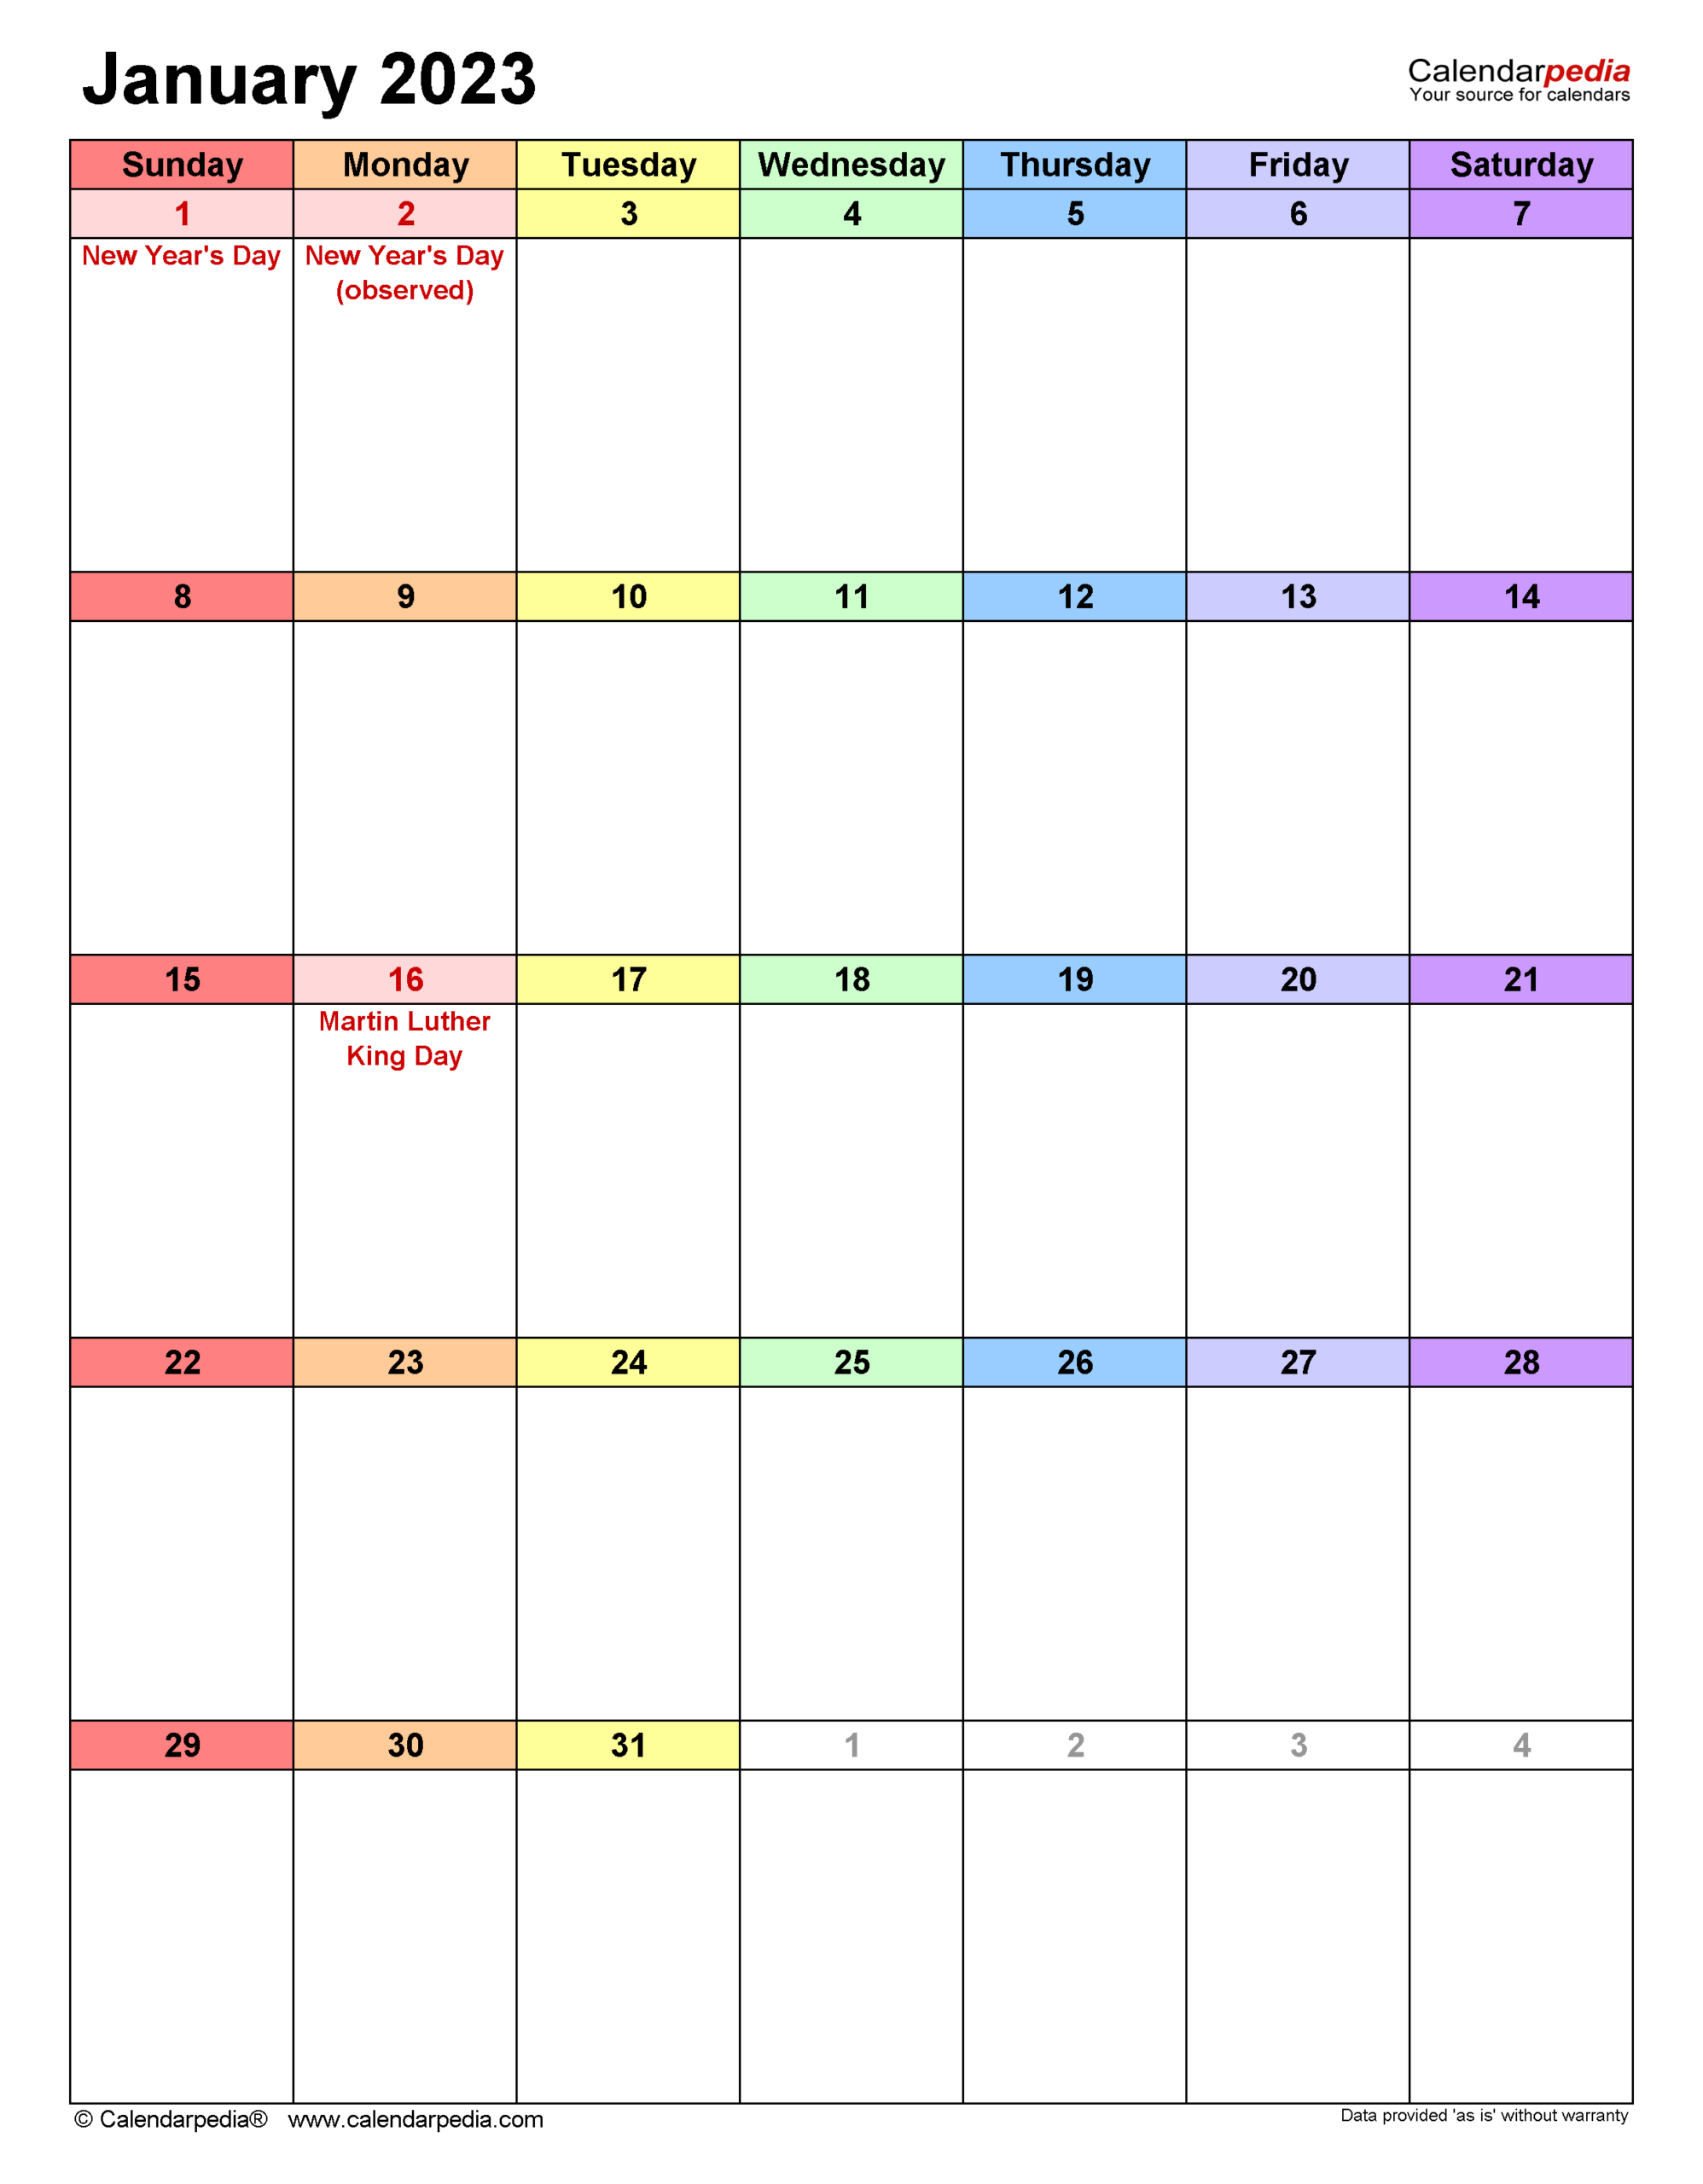 January 2023 - Calendar Templates For Word, Excel And Pdf